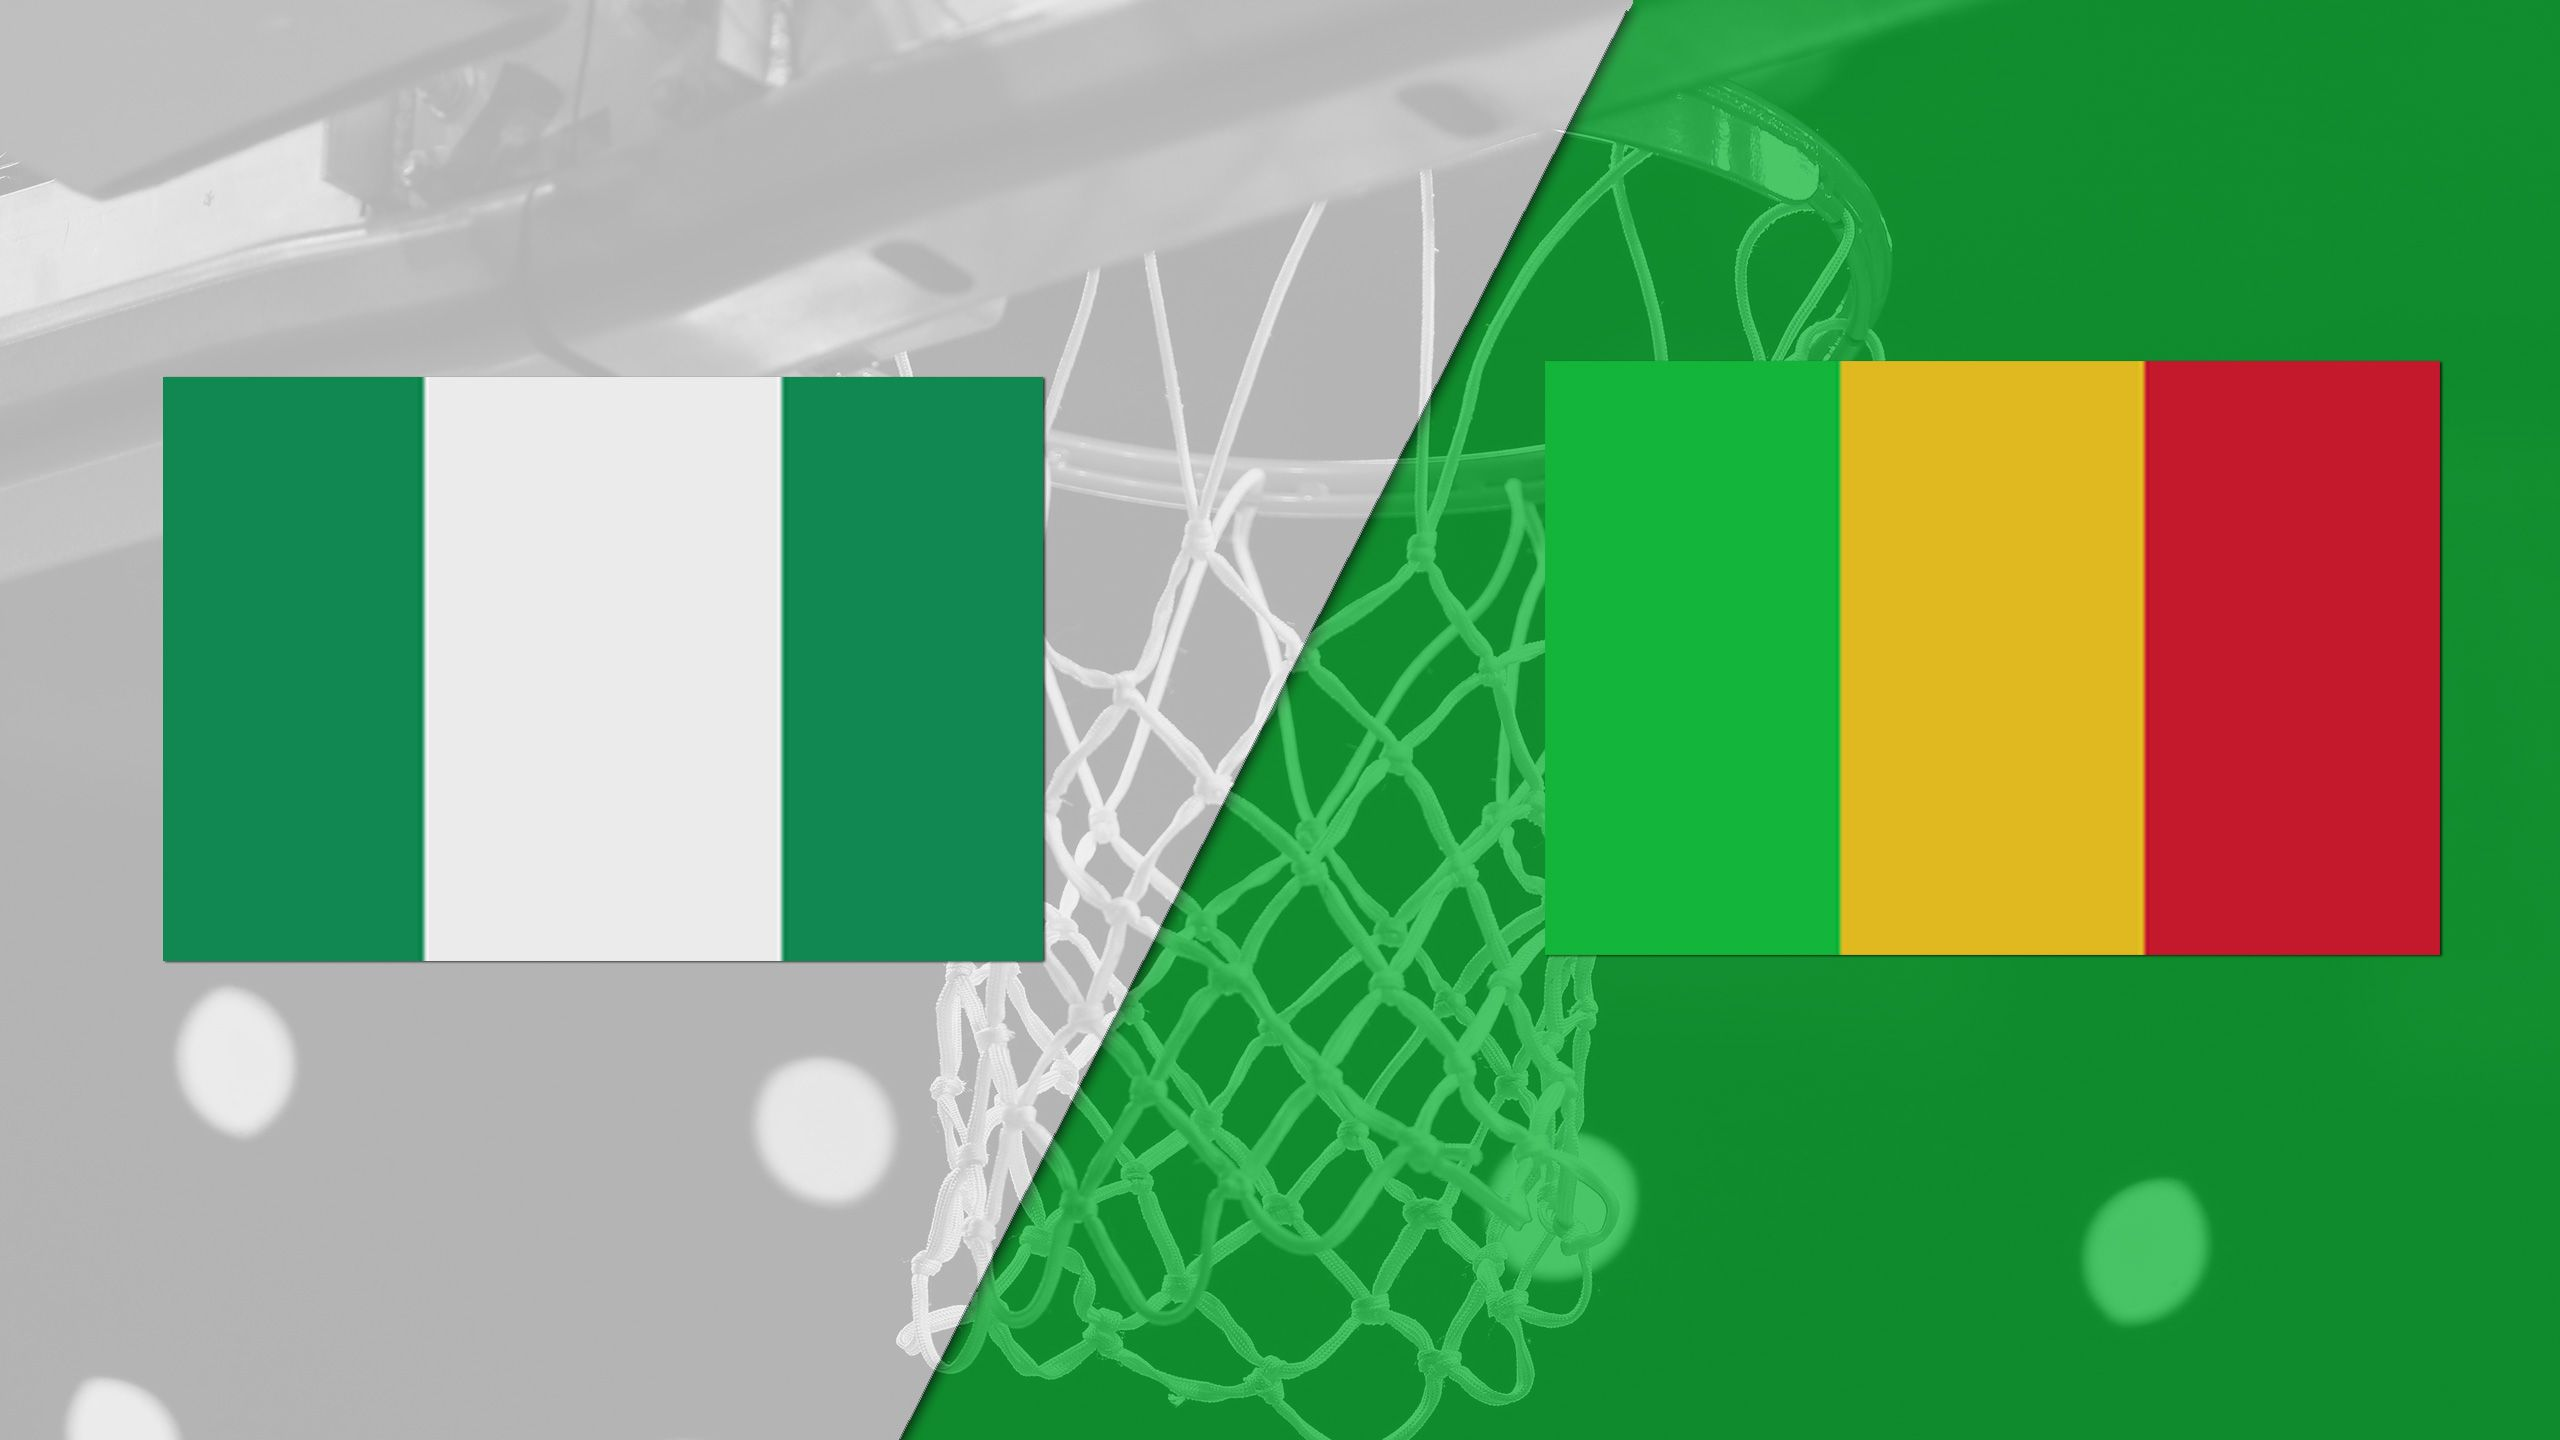 Nigeria vs. Mali (FIBA World Cup 2019 Qualifier)